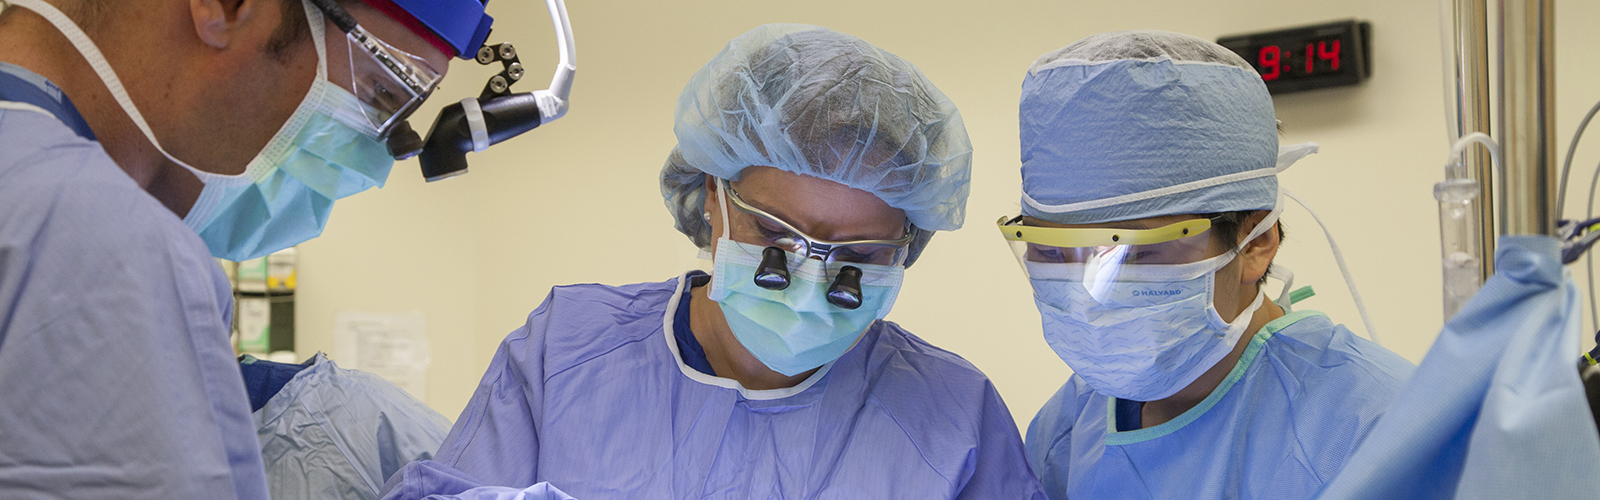 Rebecca Sippel in operating room